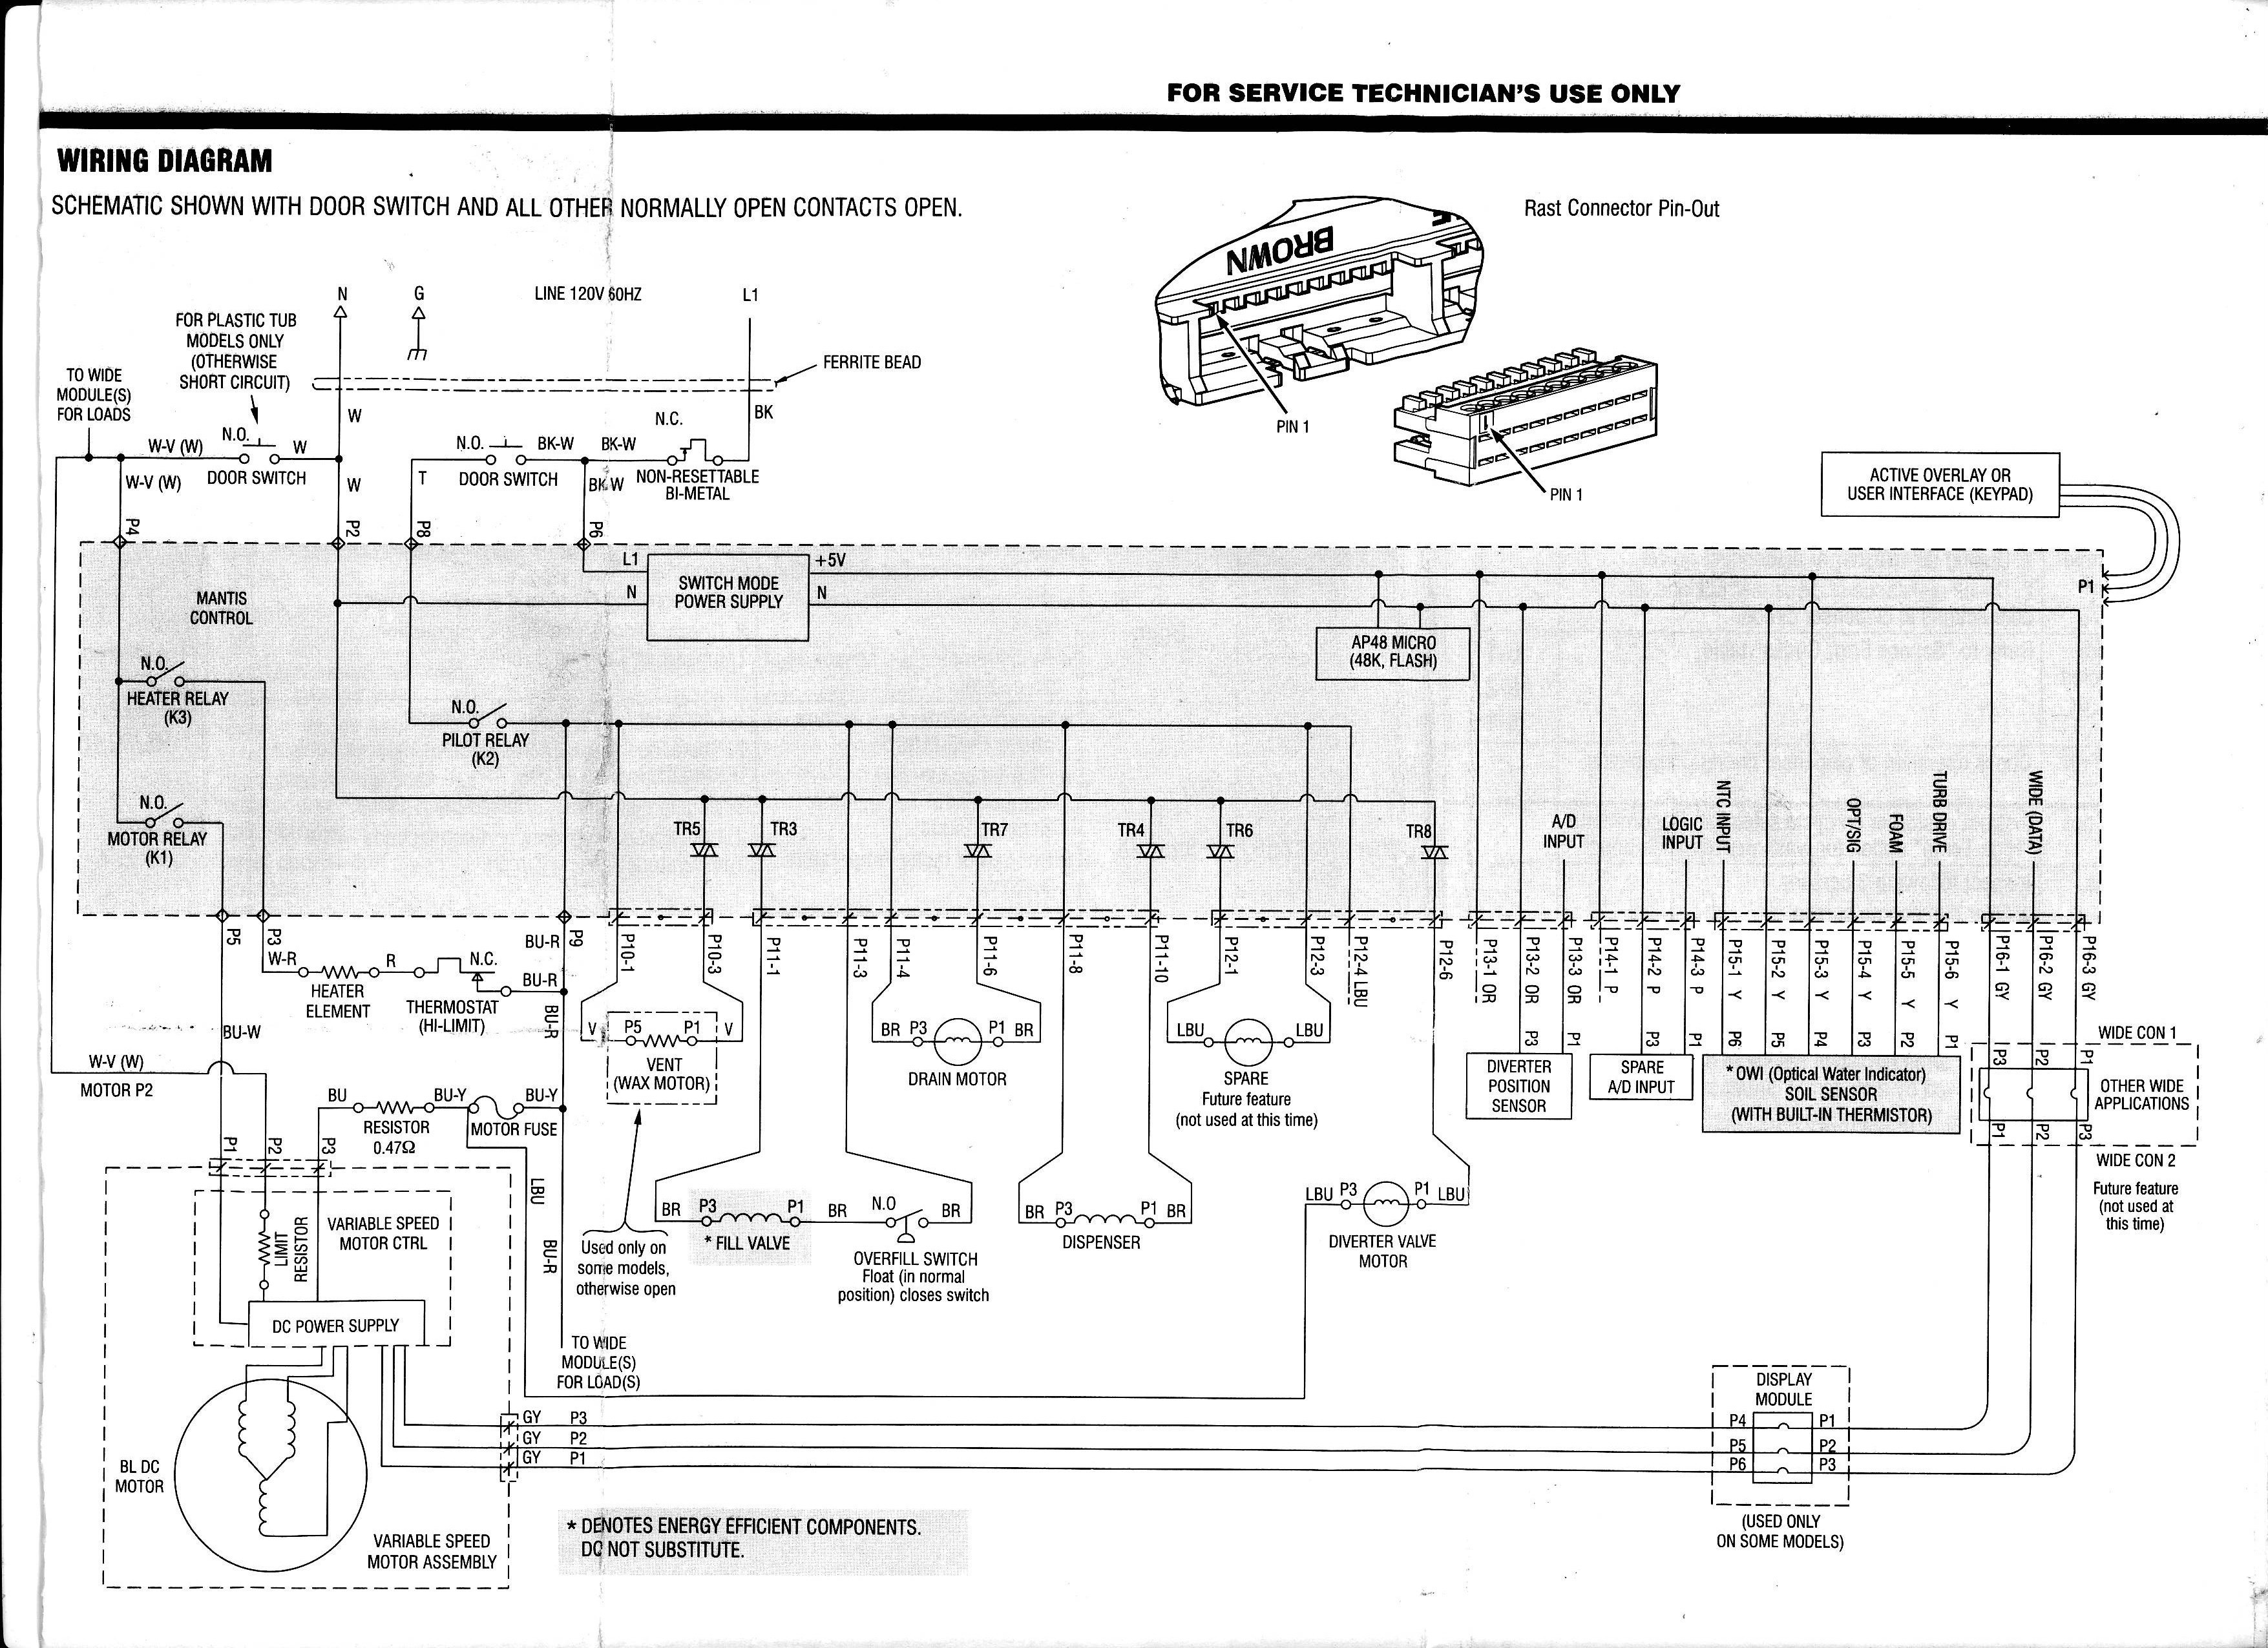 Bosch dishwasher wiring diagram 2 amazing dishwasher wiring diagram bosch dishwasher wiring diagram 2 amazing dishwasher wiring diagram contemporary everything you need of bosch dishwasher asfbconference2016 Image collections